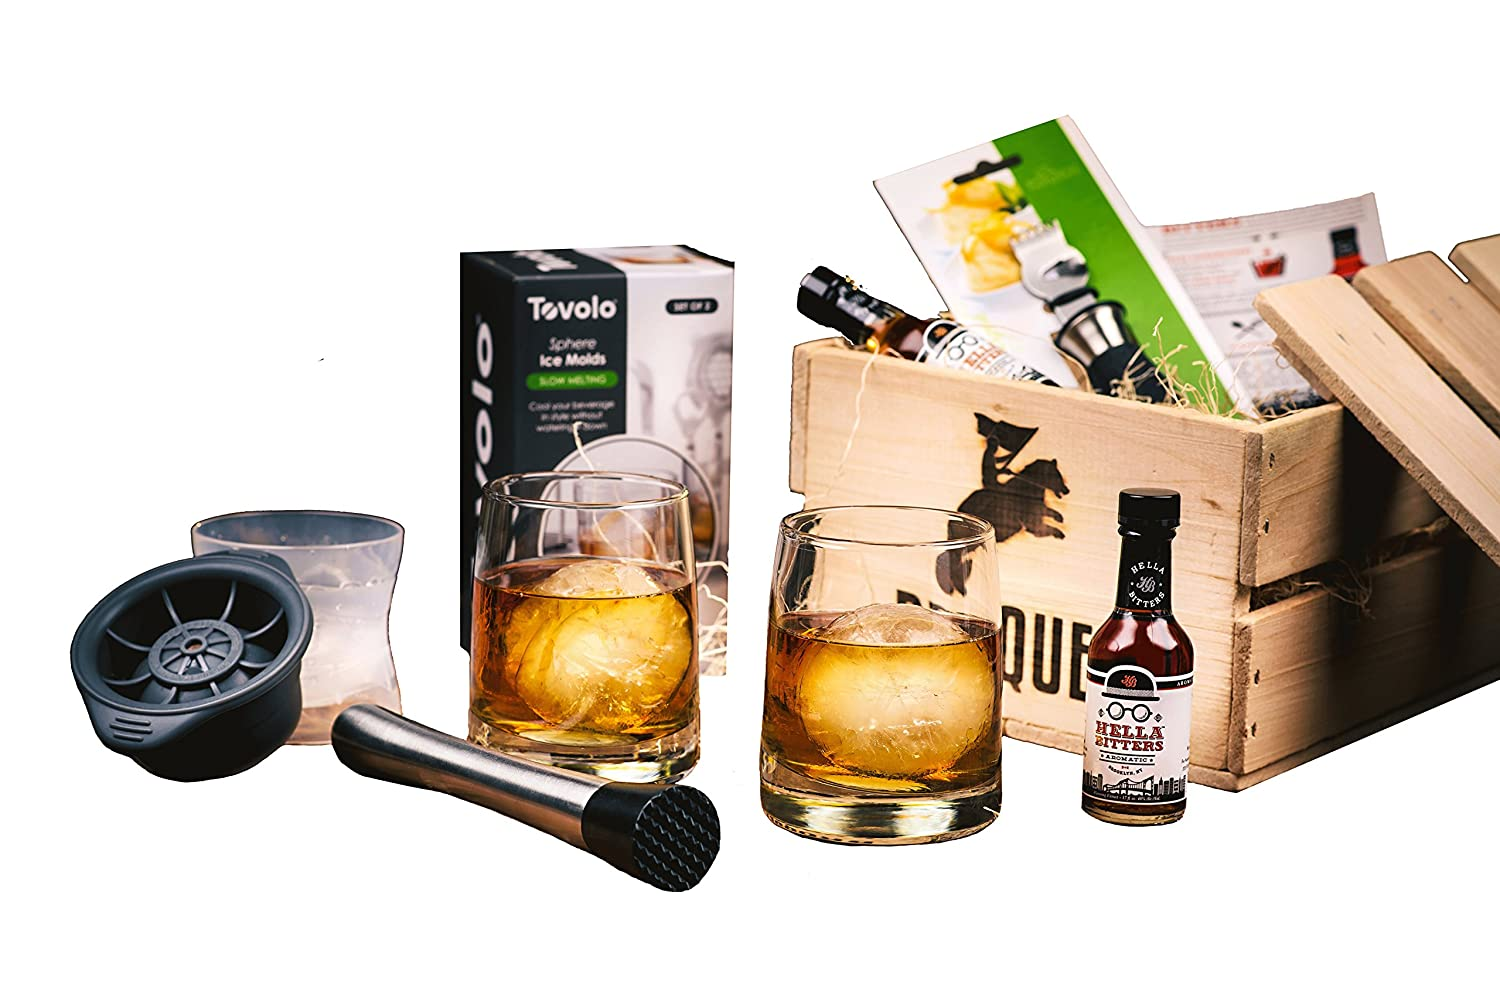 Old Fashioned Cocktail Kit Gift (7 Piece Drink Set) - Comes in a Wooden Gift Crate - Old-Fashioned Cocktail - Great Gift For Men Broquet